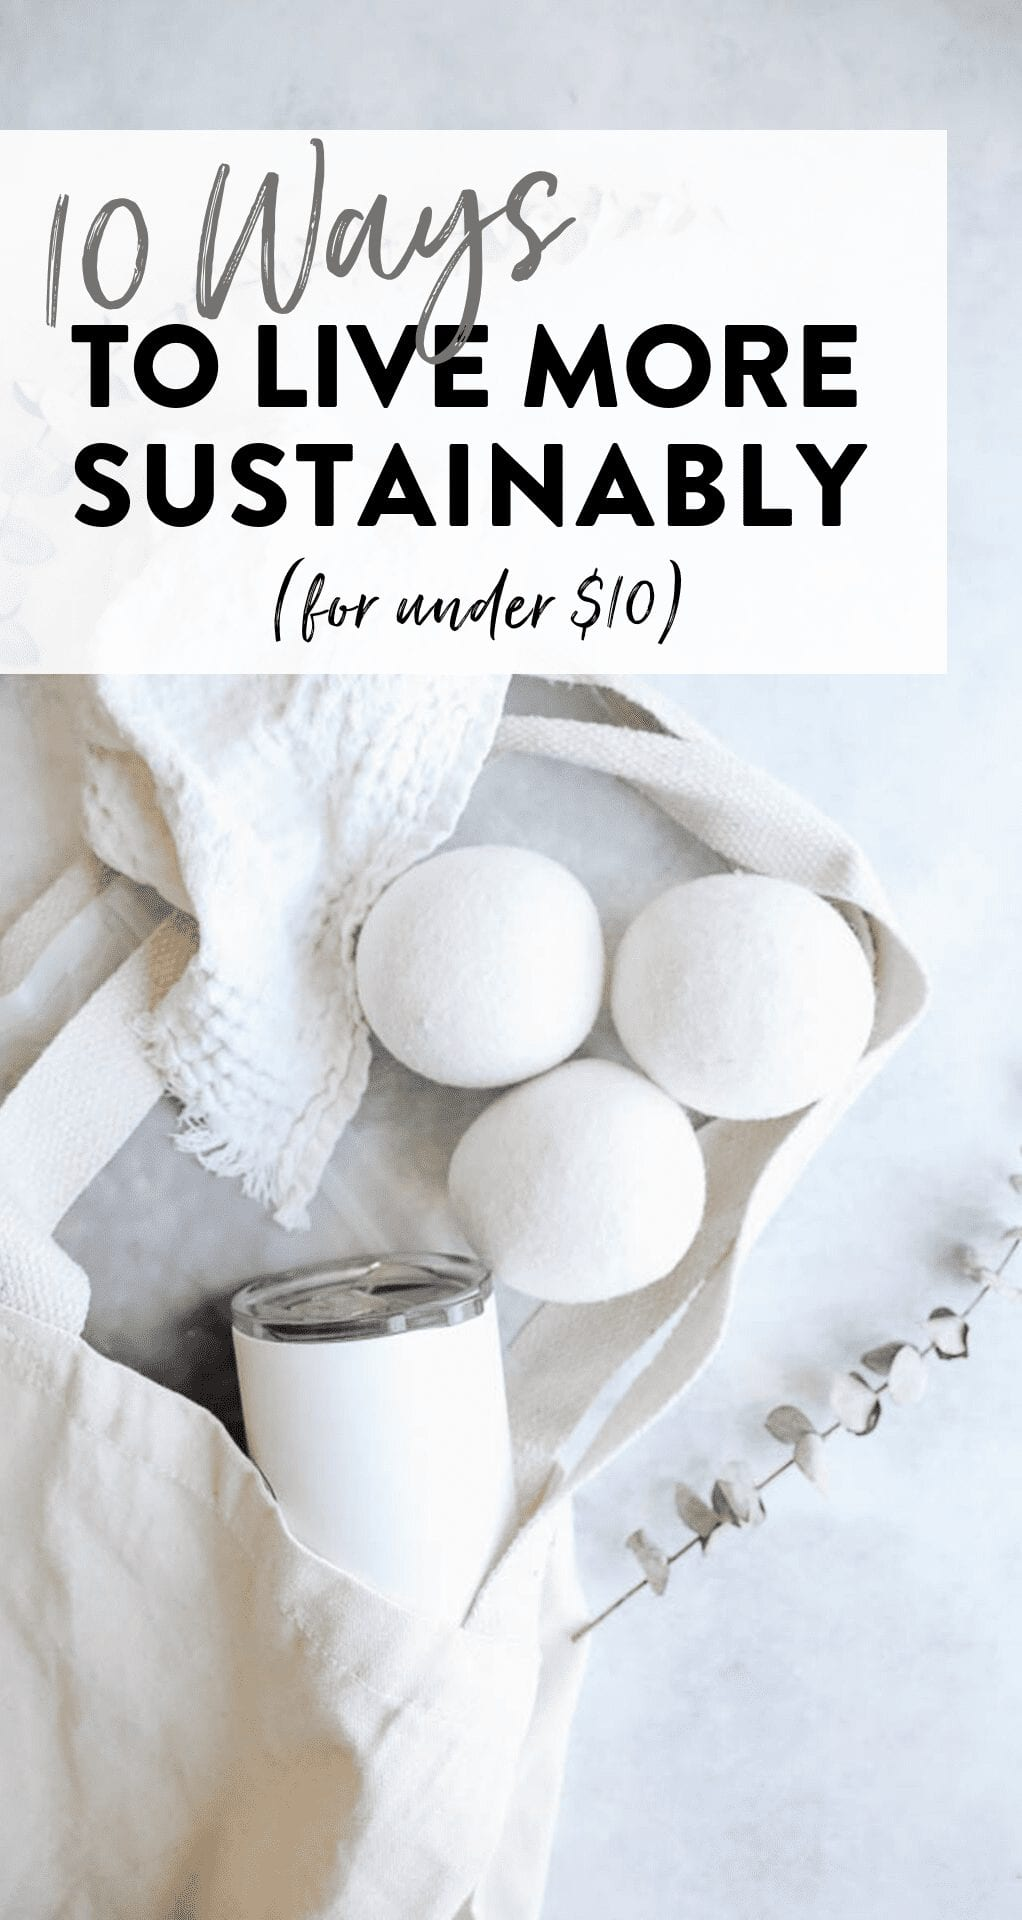 It is imperative we shift our lifestyle habits to live more sustainably, however you don't need to spend an arm and a leg making this happen. Here are 10 ways to live more sustainably for less than $10!